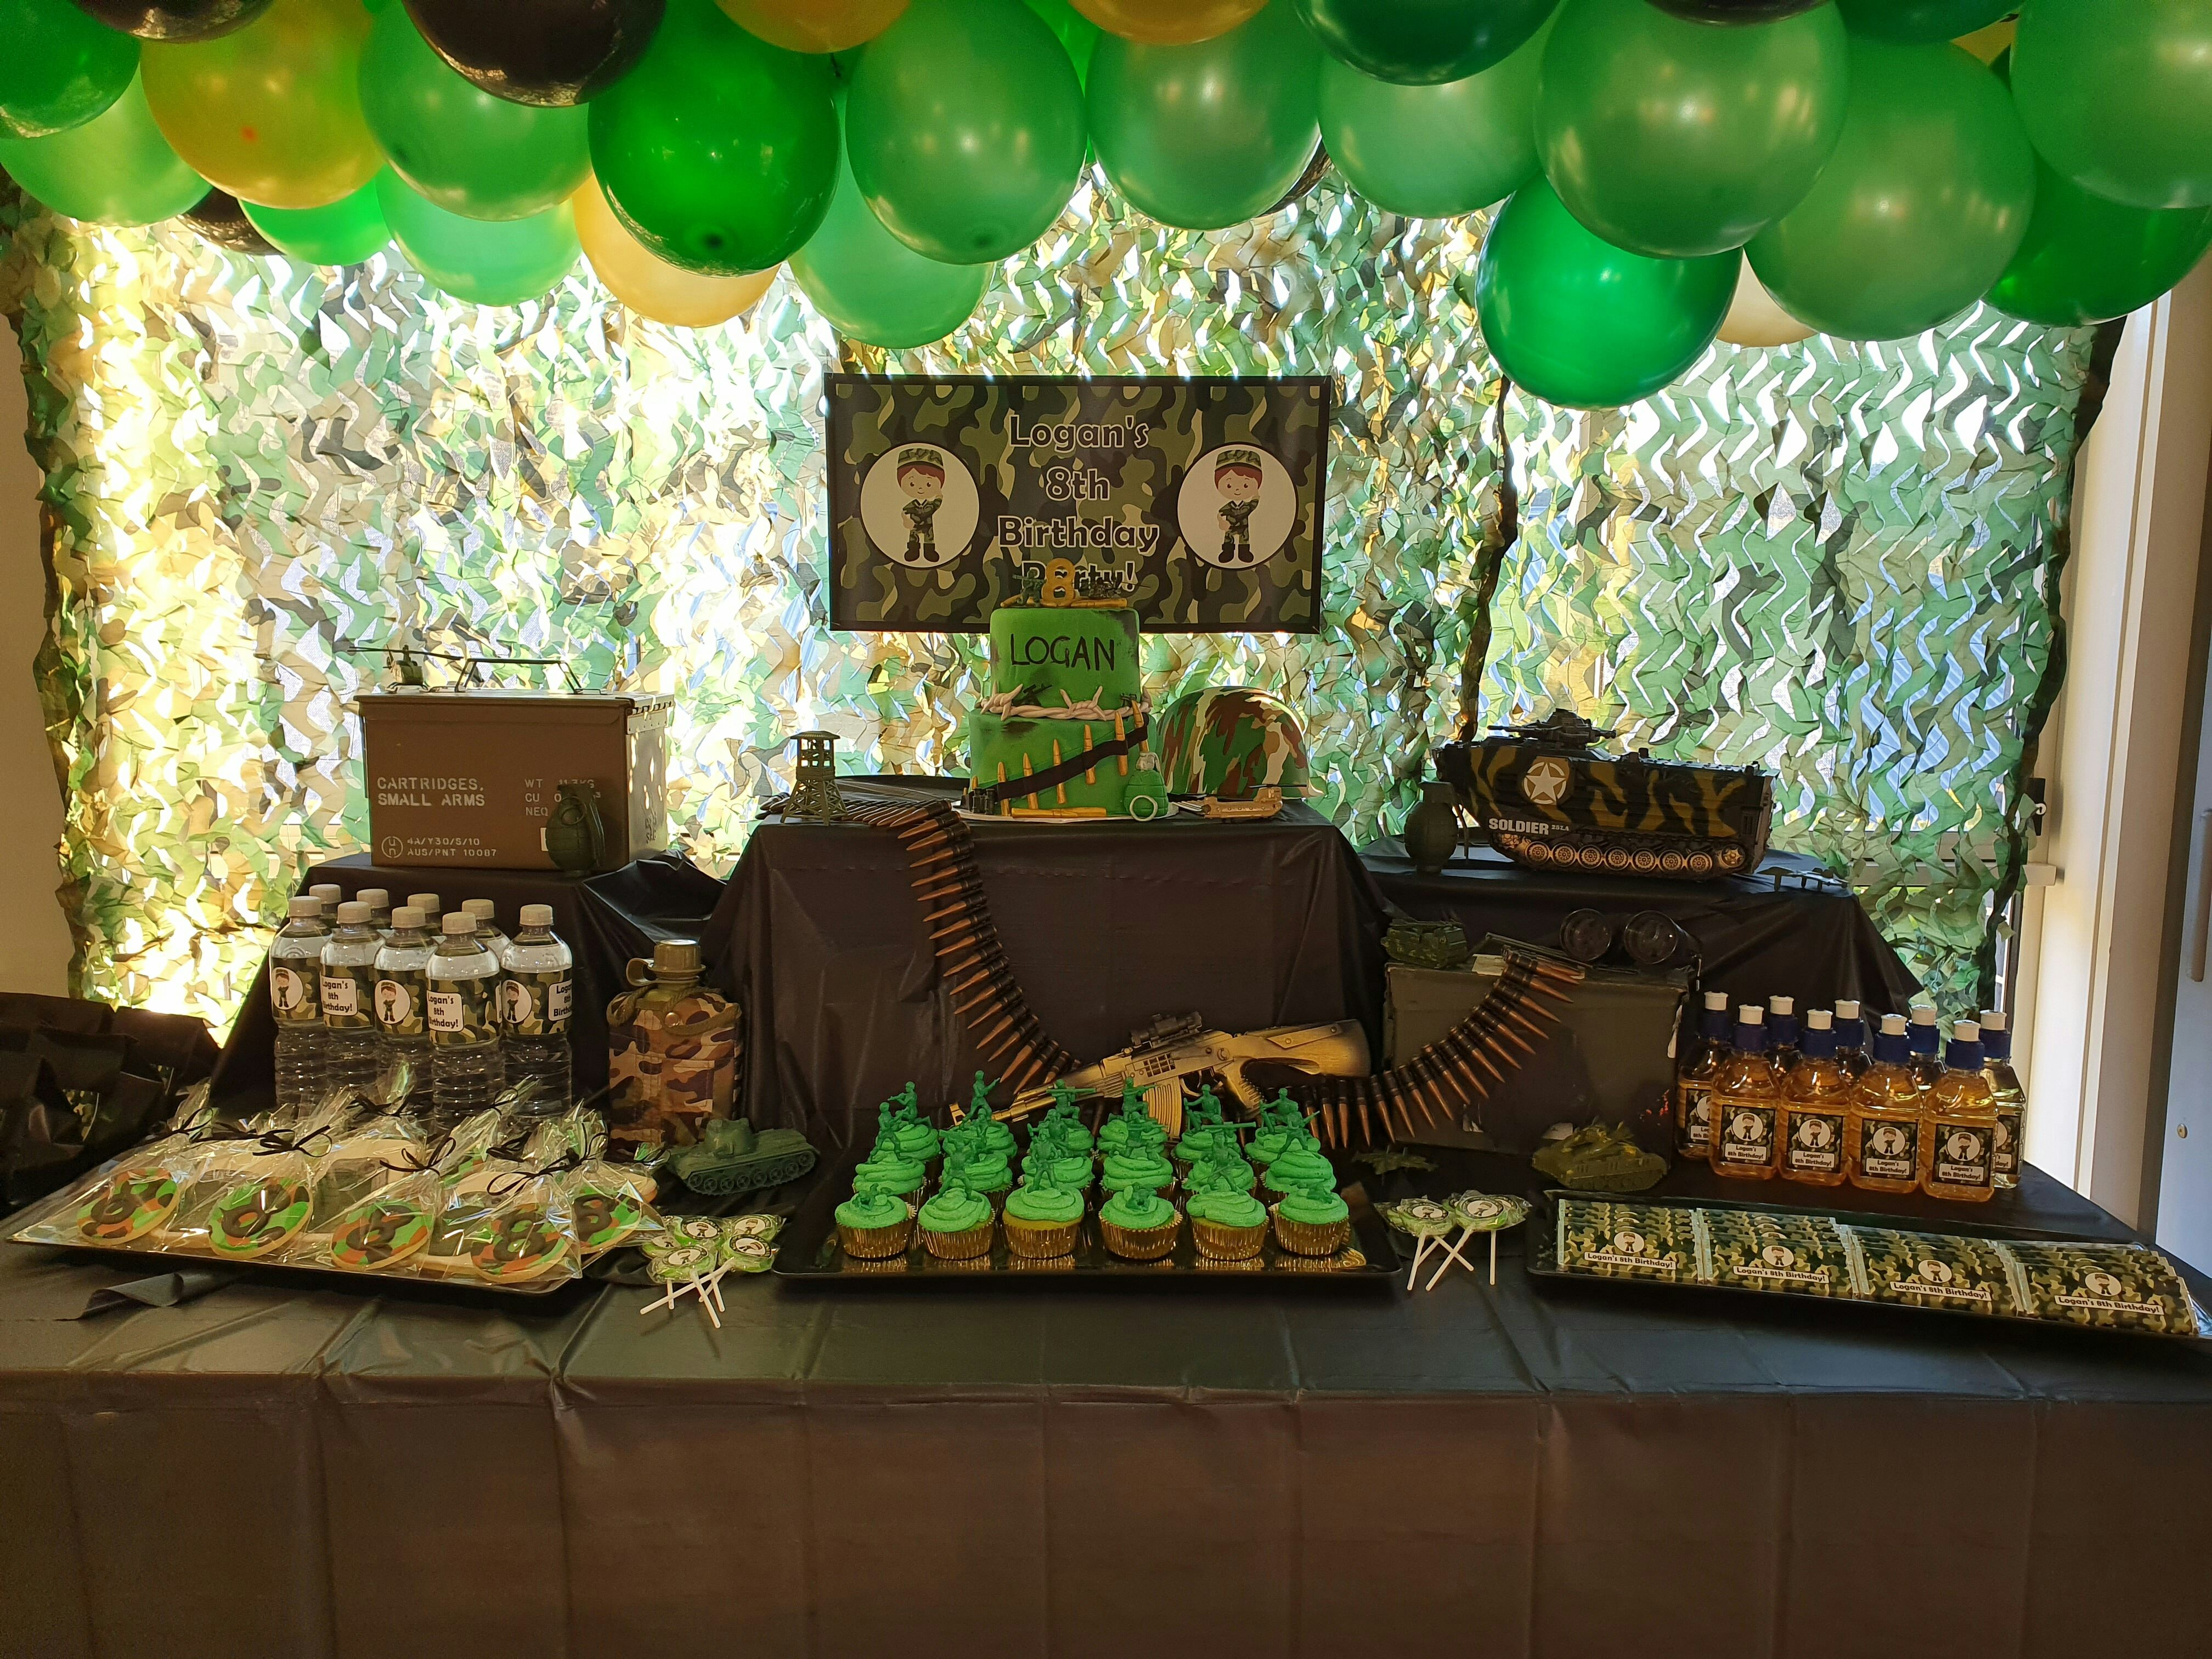 Army Camouflage Birthday Party Decorations in 2020 ...